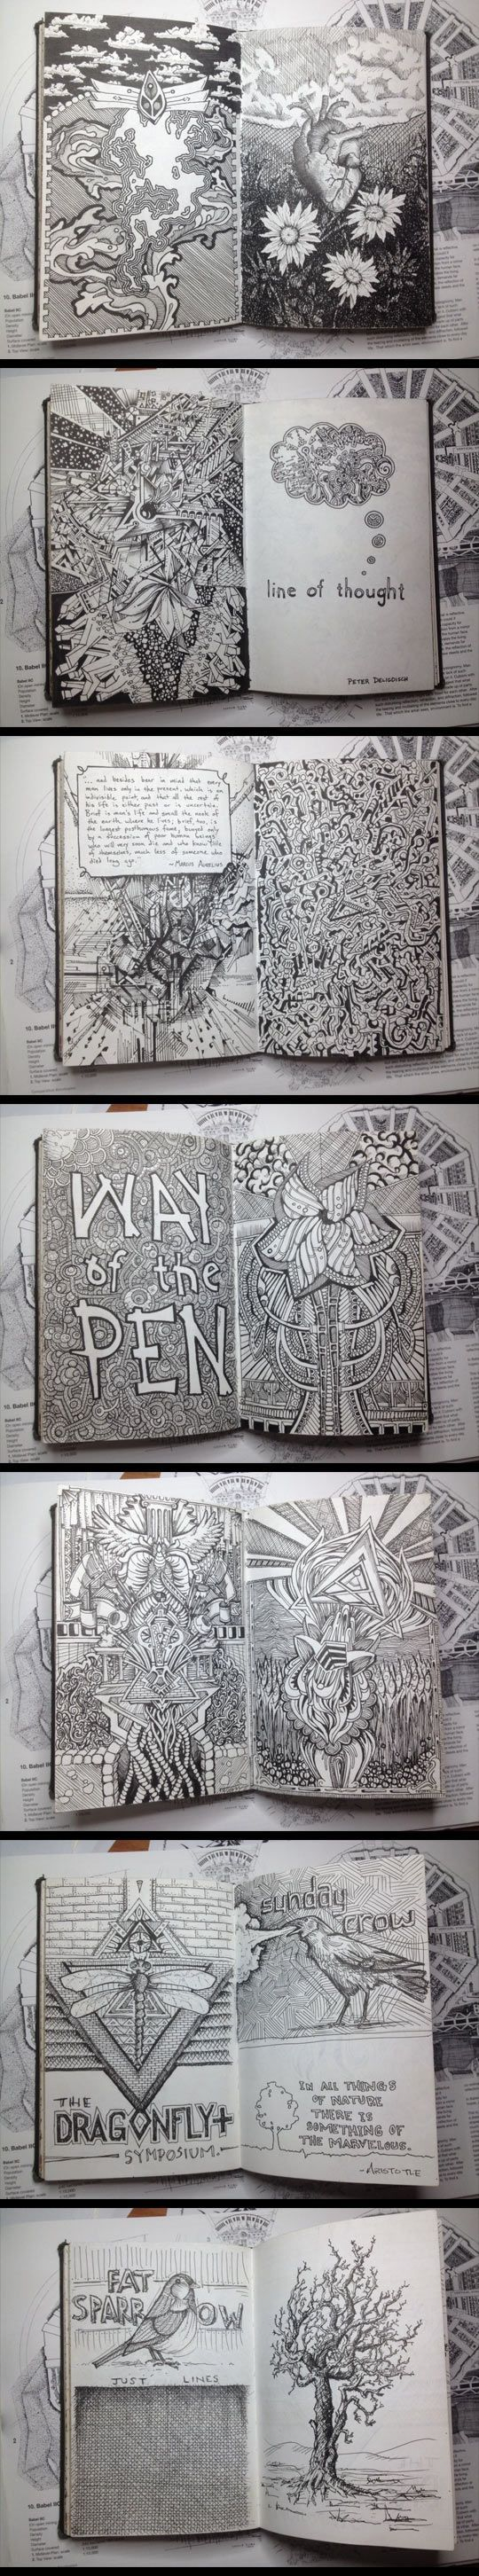 Sketchbook with some of the best drawings ever made... - The Meta Picture: